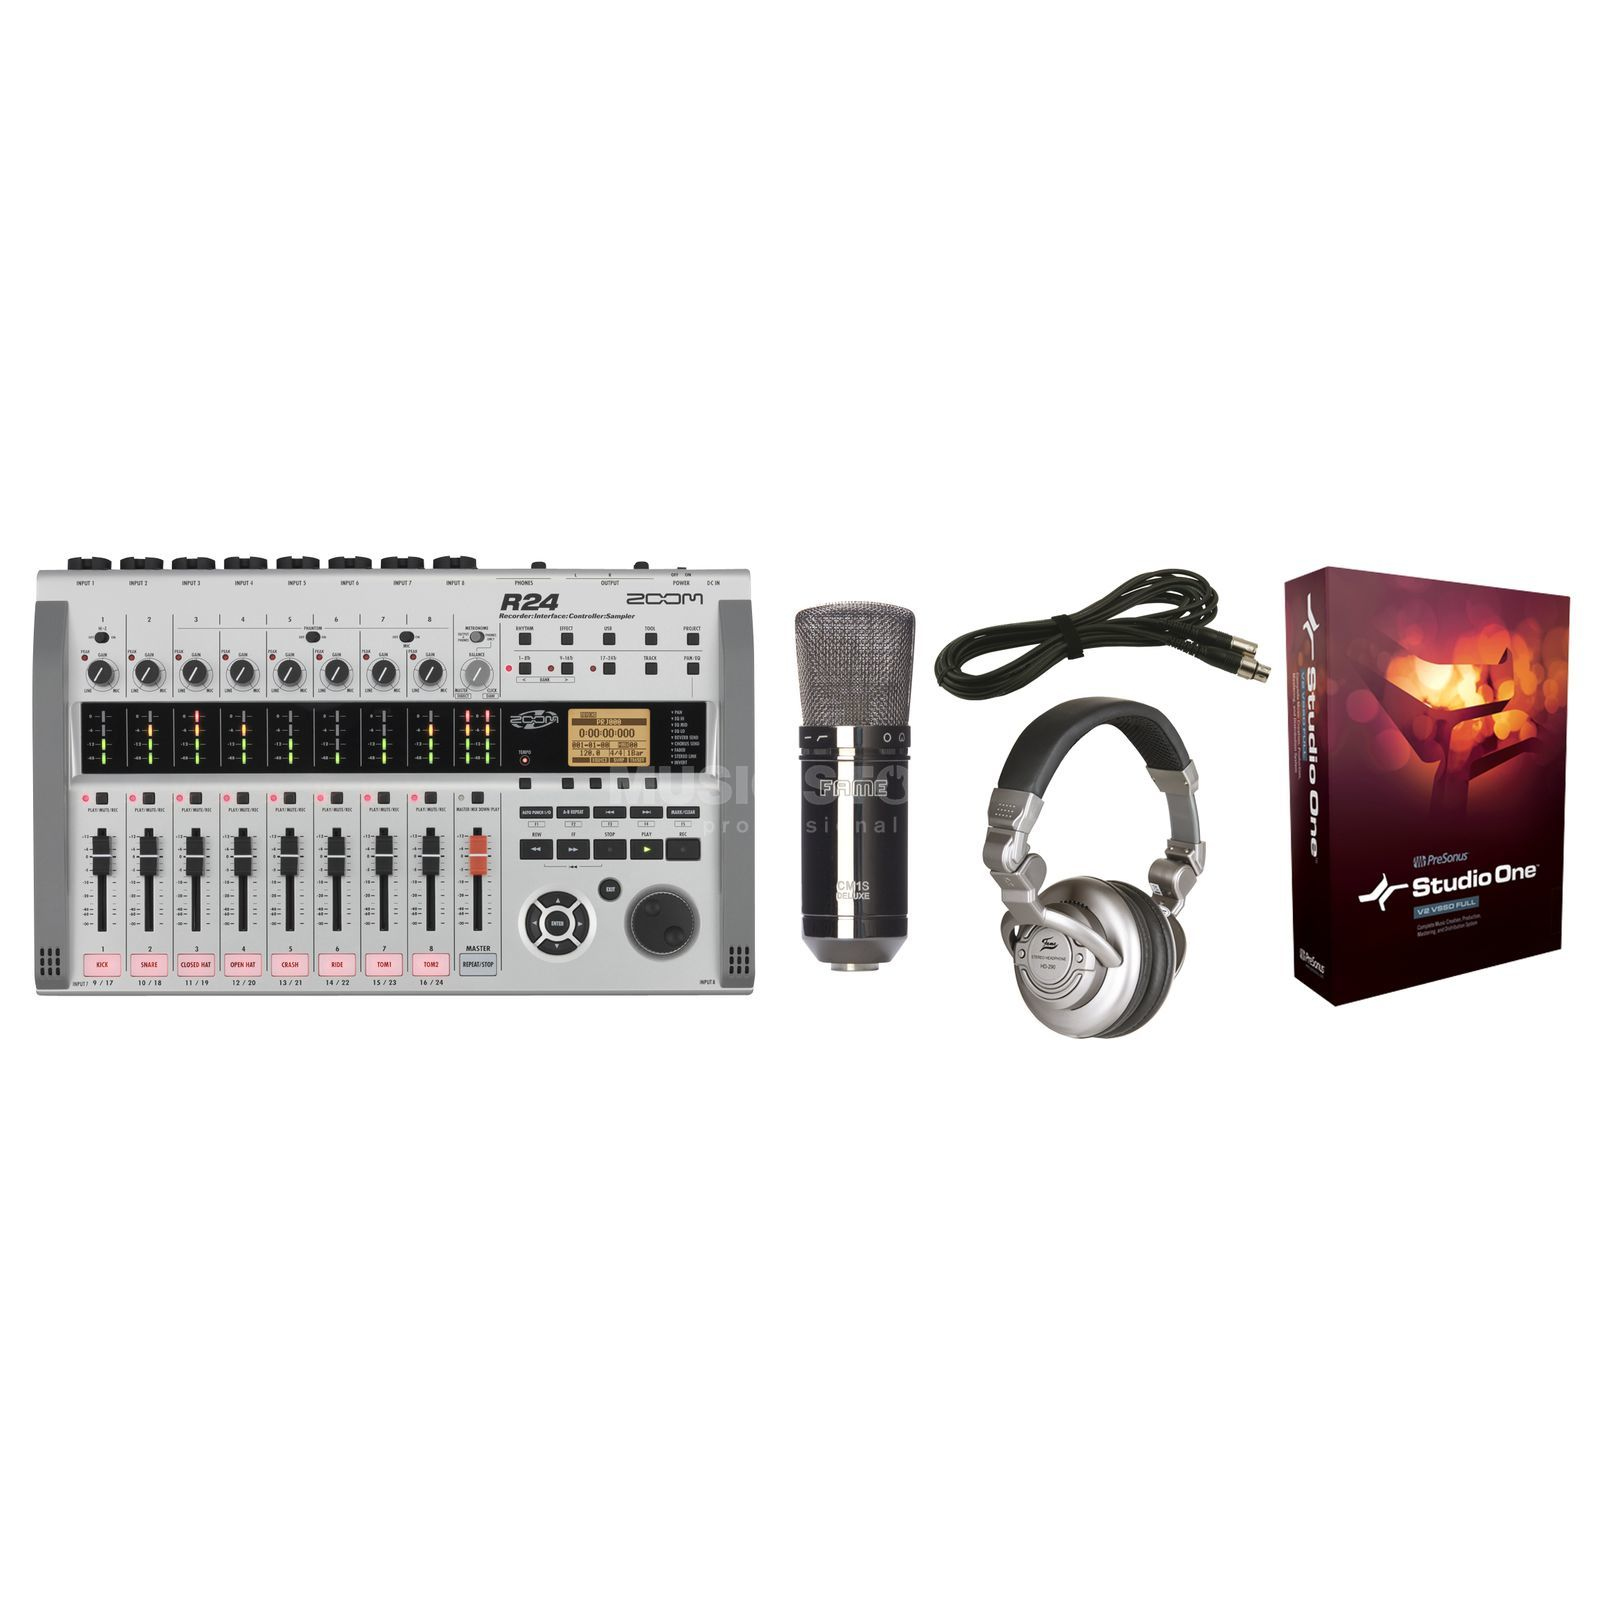 SET Zoom R24 / Studio Bundle Zoom R24 + Mikro + Hörer SET Produktbild